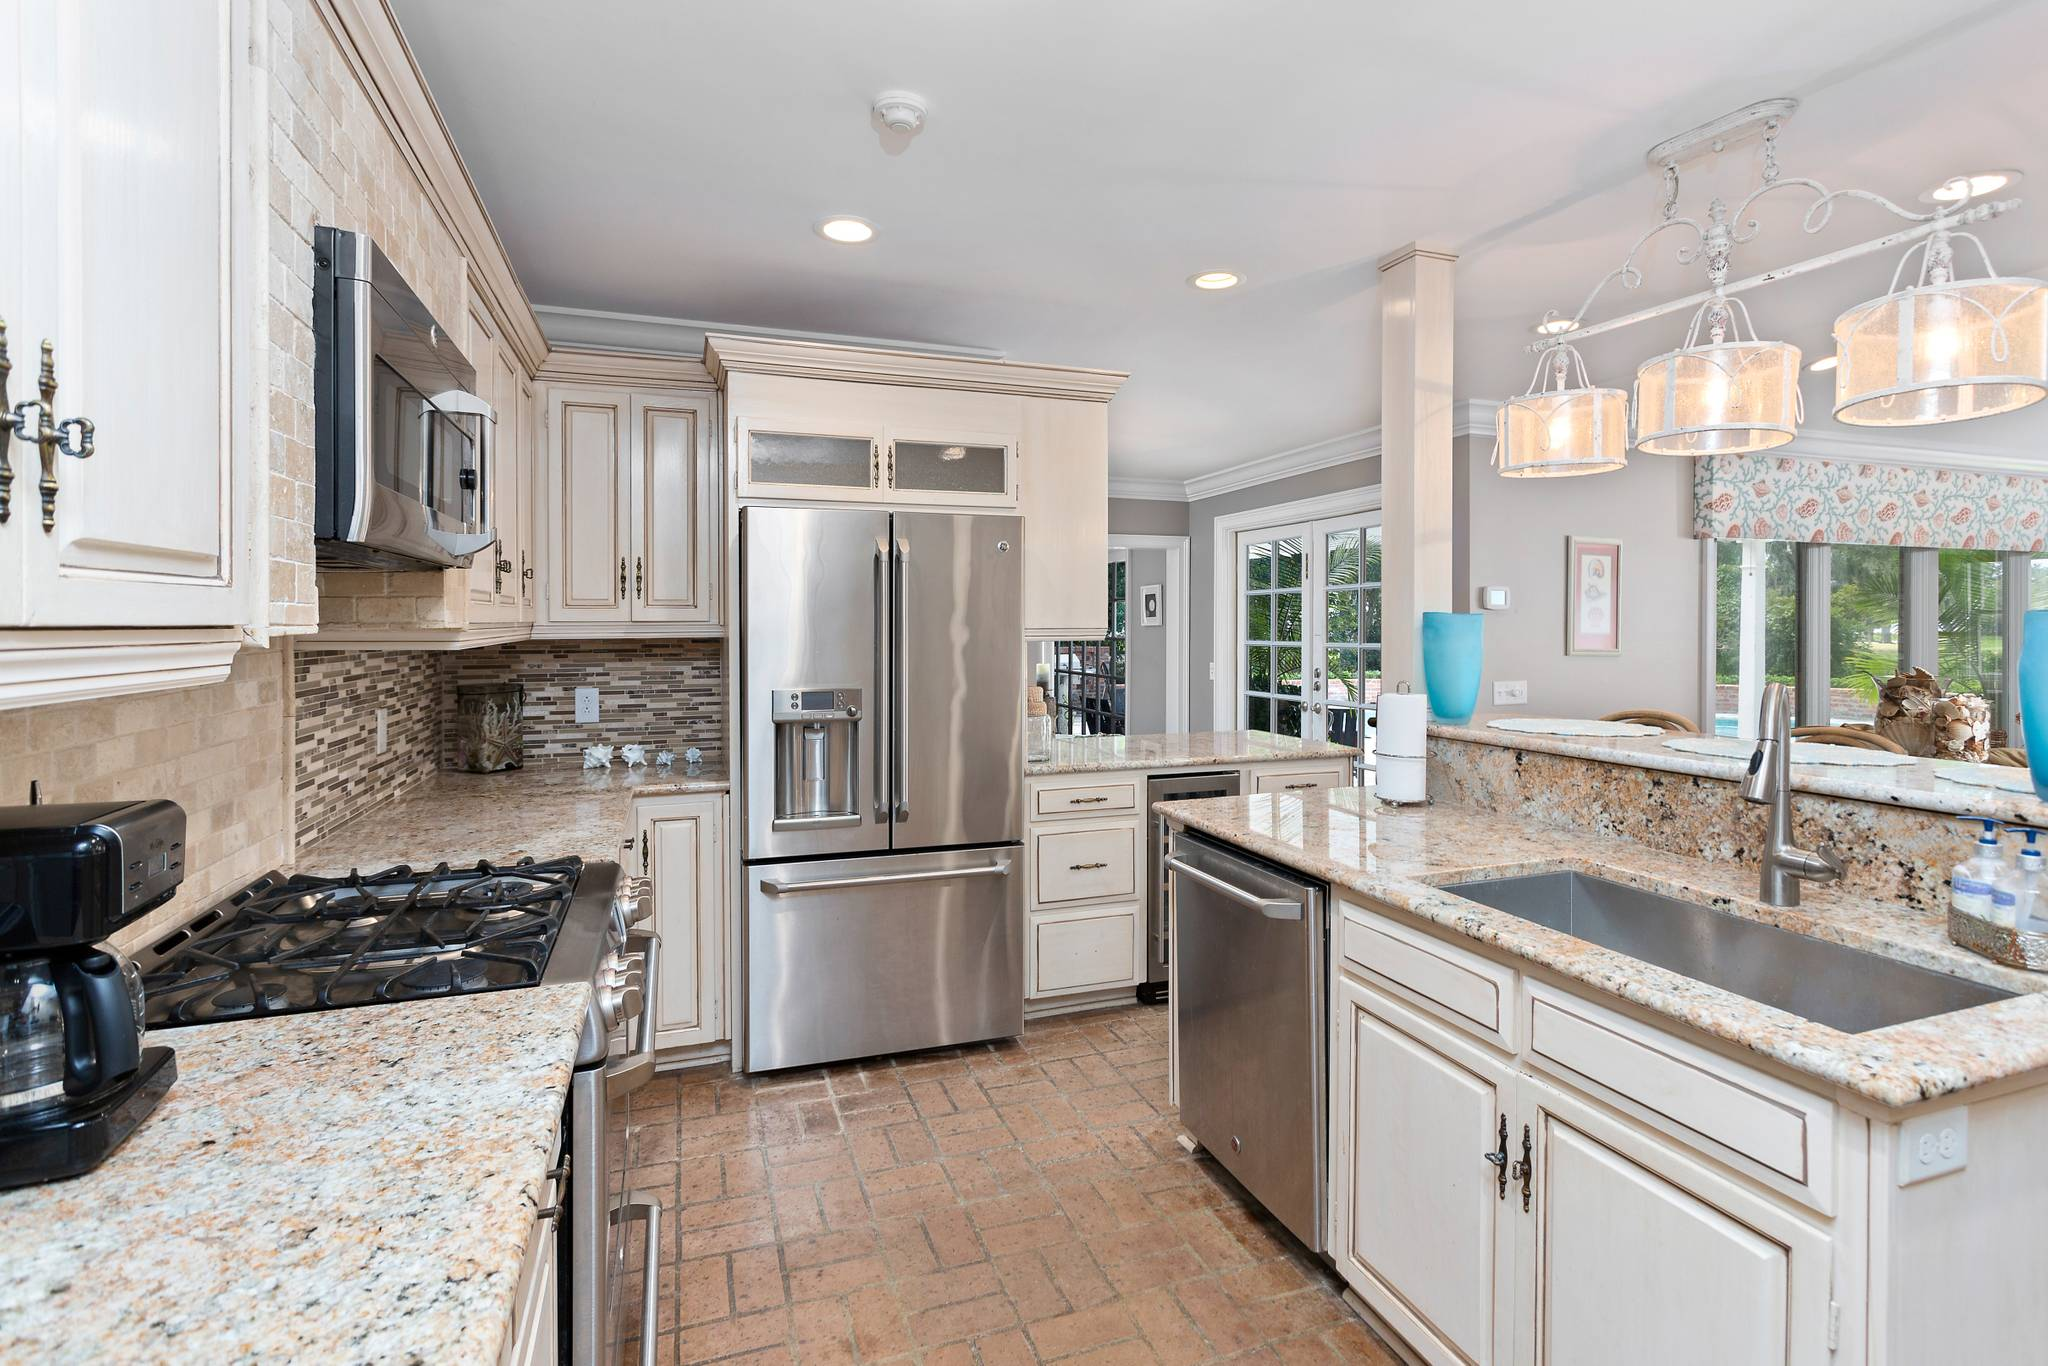 Kitchen at 154 Gould St on St Simons Island